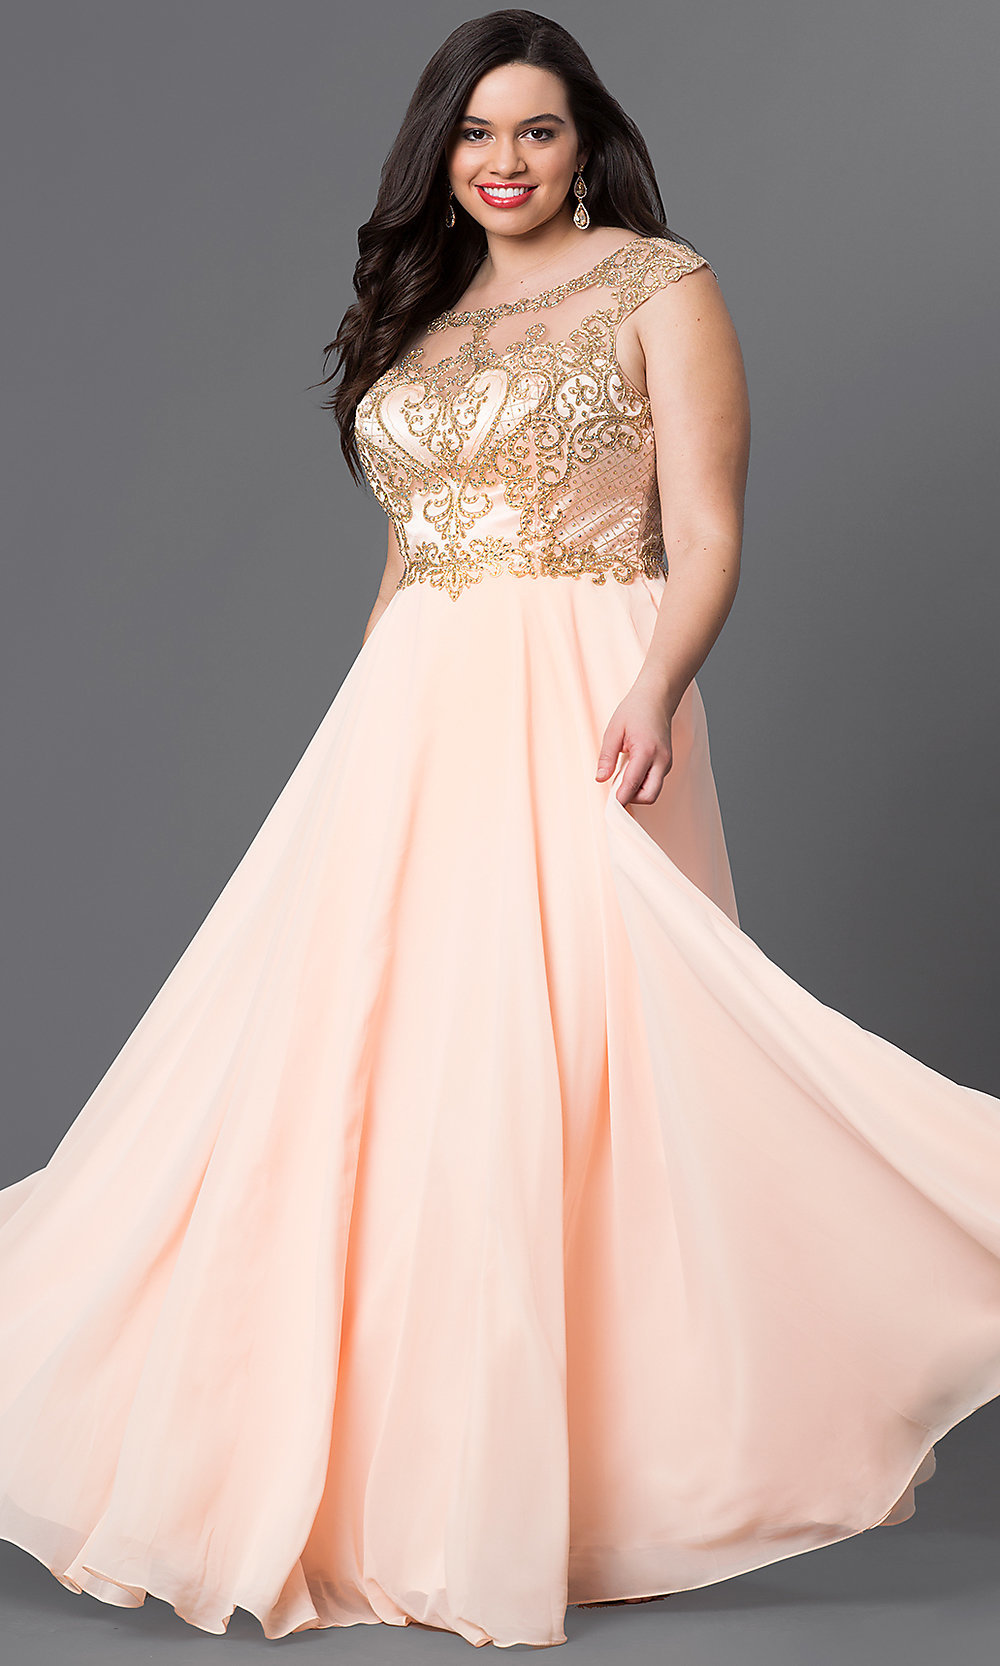 60% cheap fine quality shop for official Peach Pink Plus-Size Long Prom Dress - PromGirl